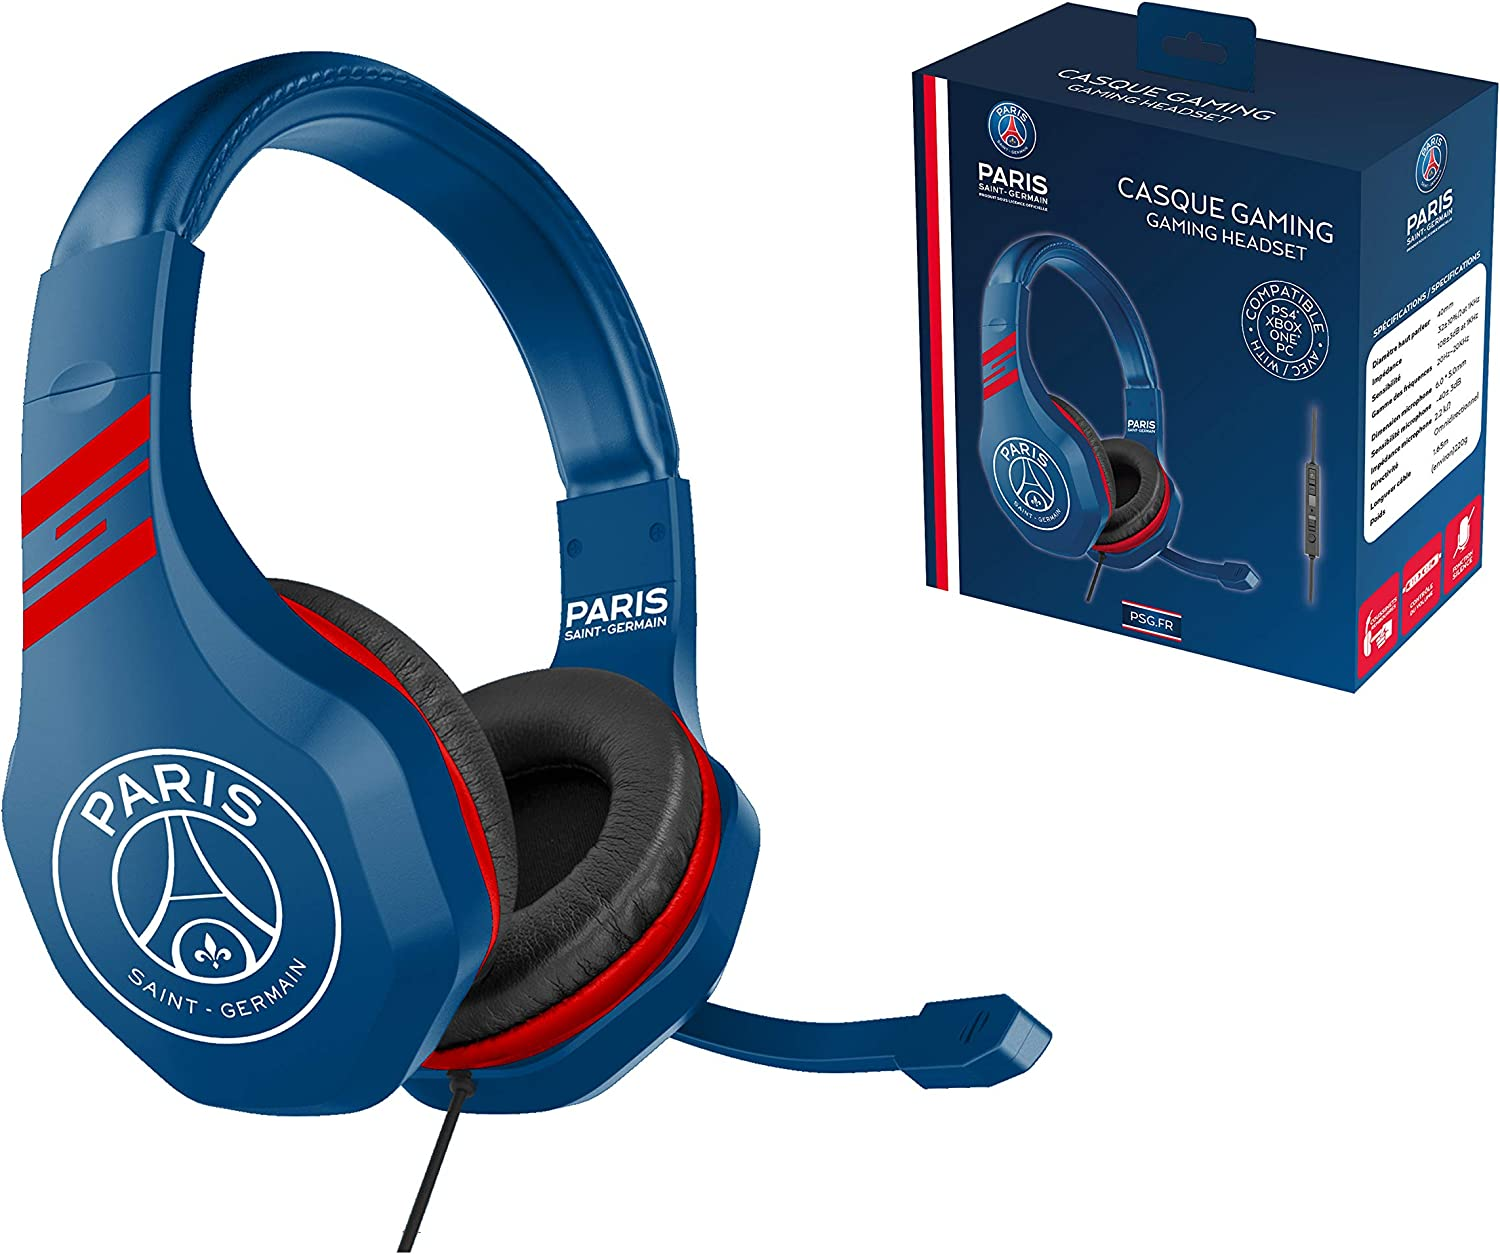 casque gaming ps3 bluetooth